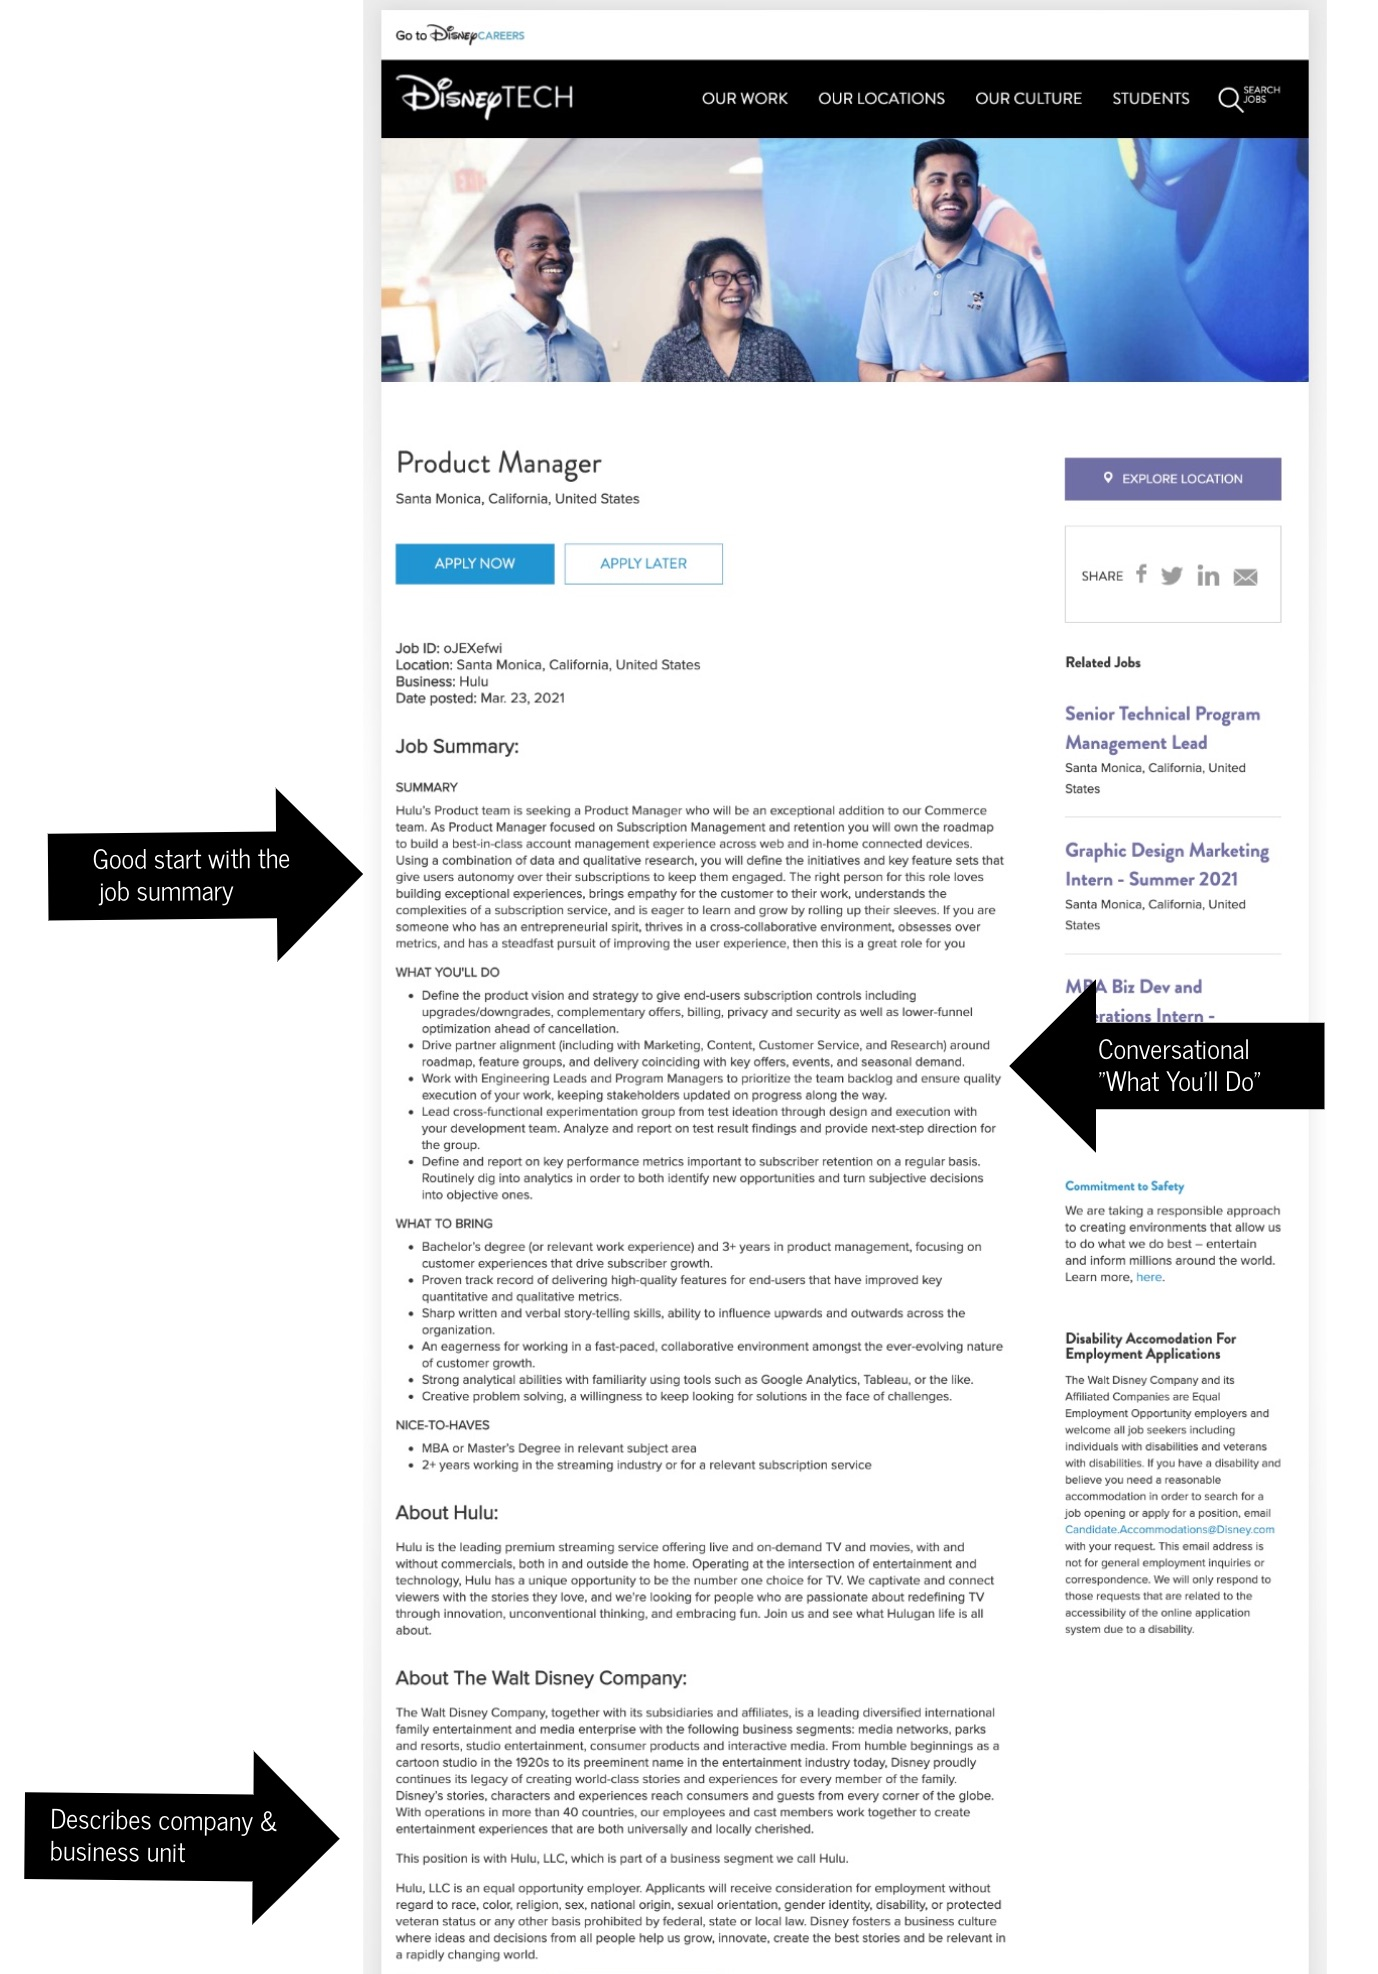 How to write a job description template Disney | Ongig